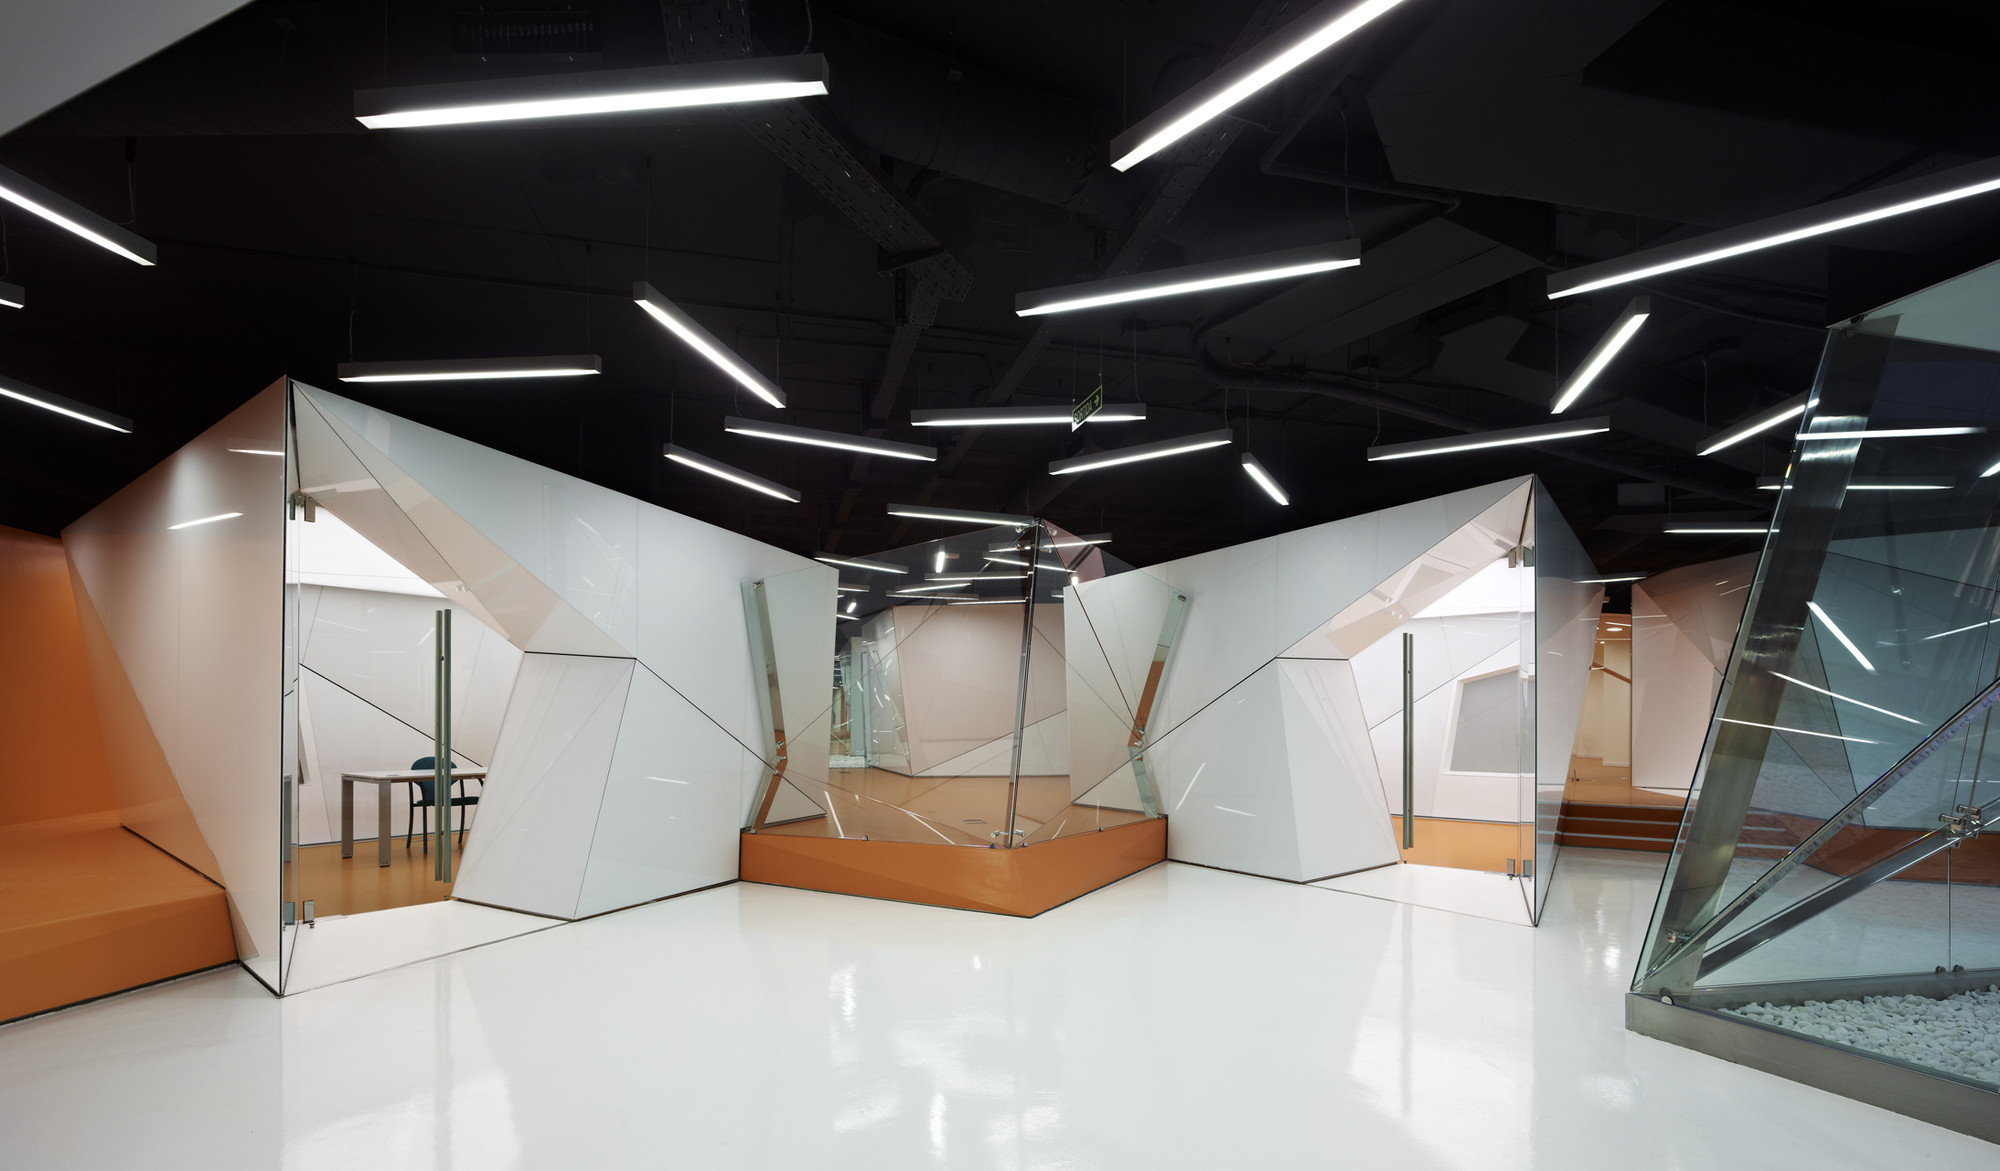 New ctti headquarters for generalitat de catalunya marc for Research interior decoration and design influences